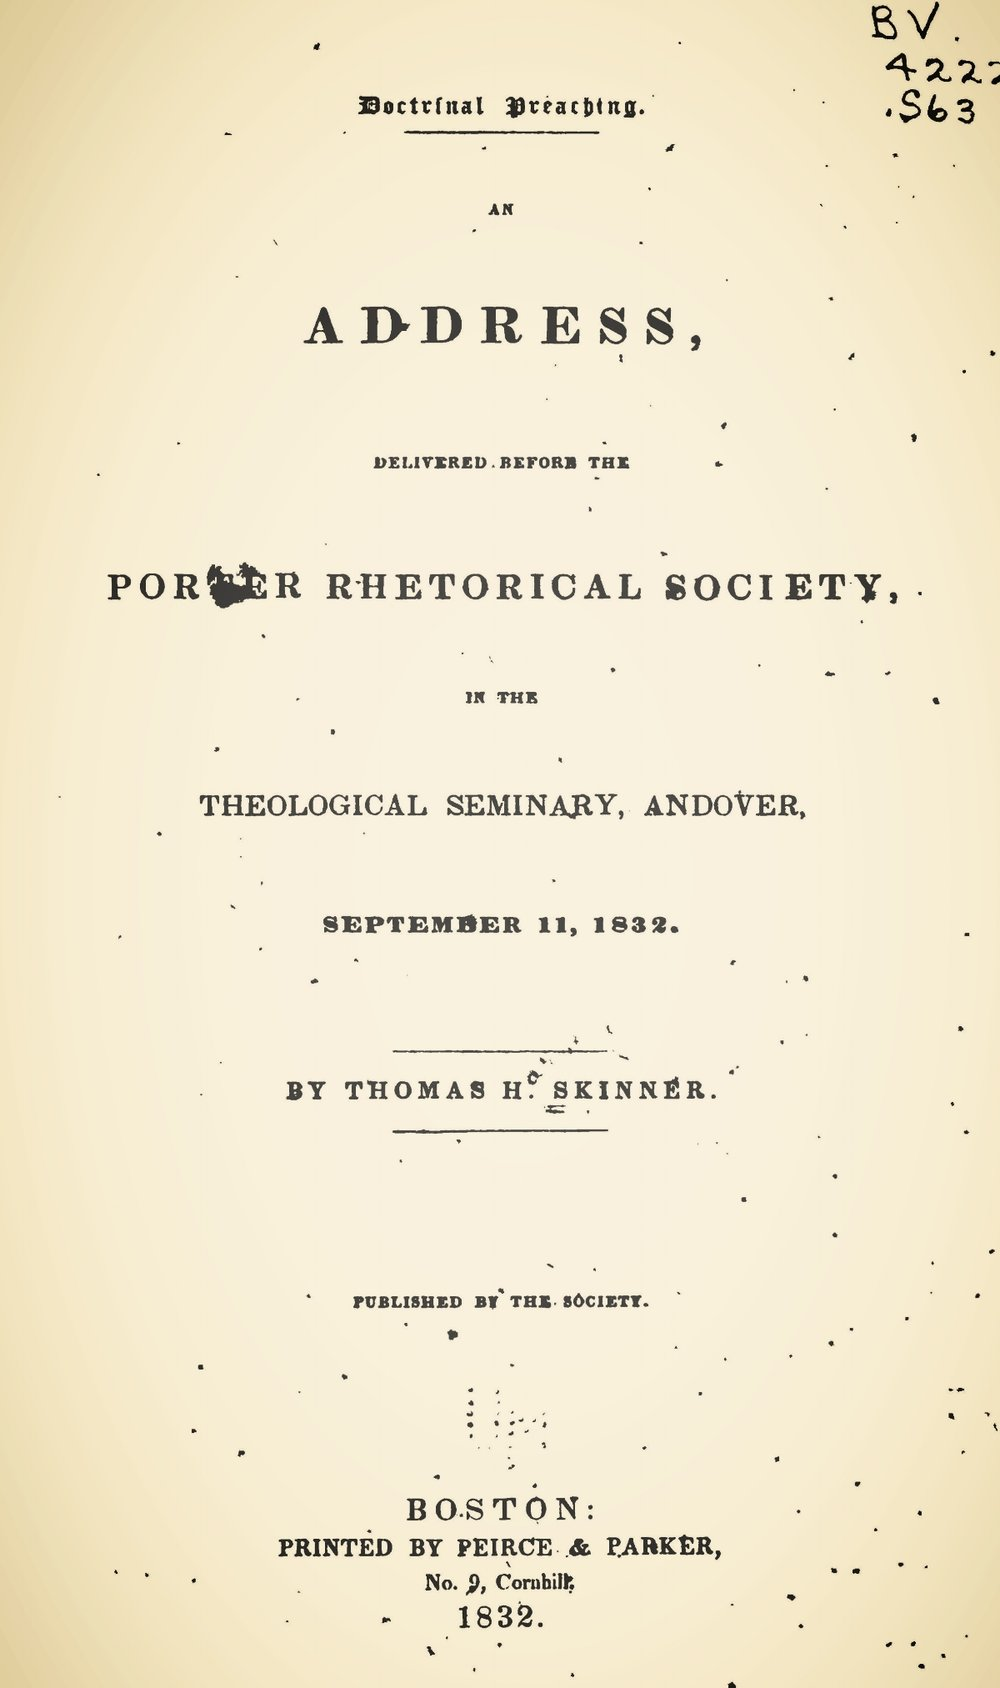 Skinner, Thomas Harvey, Doctrinal Preaching Title Page.jpg